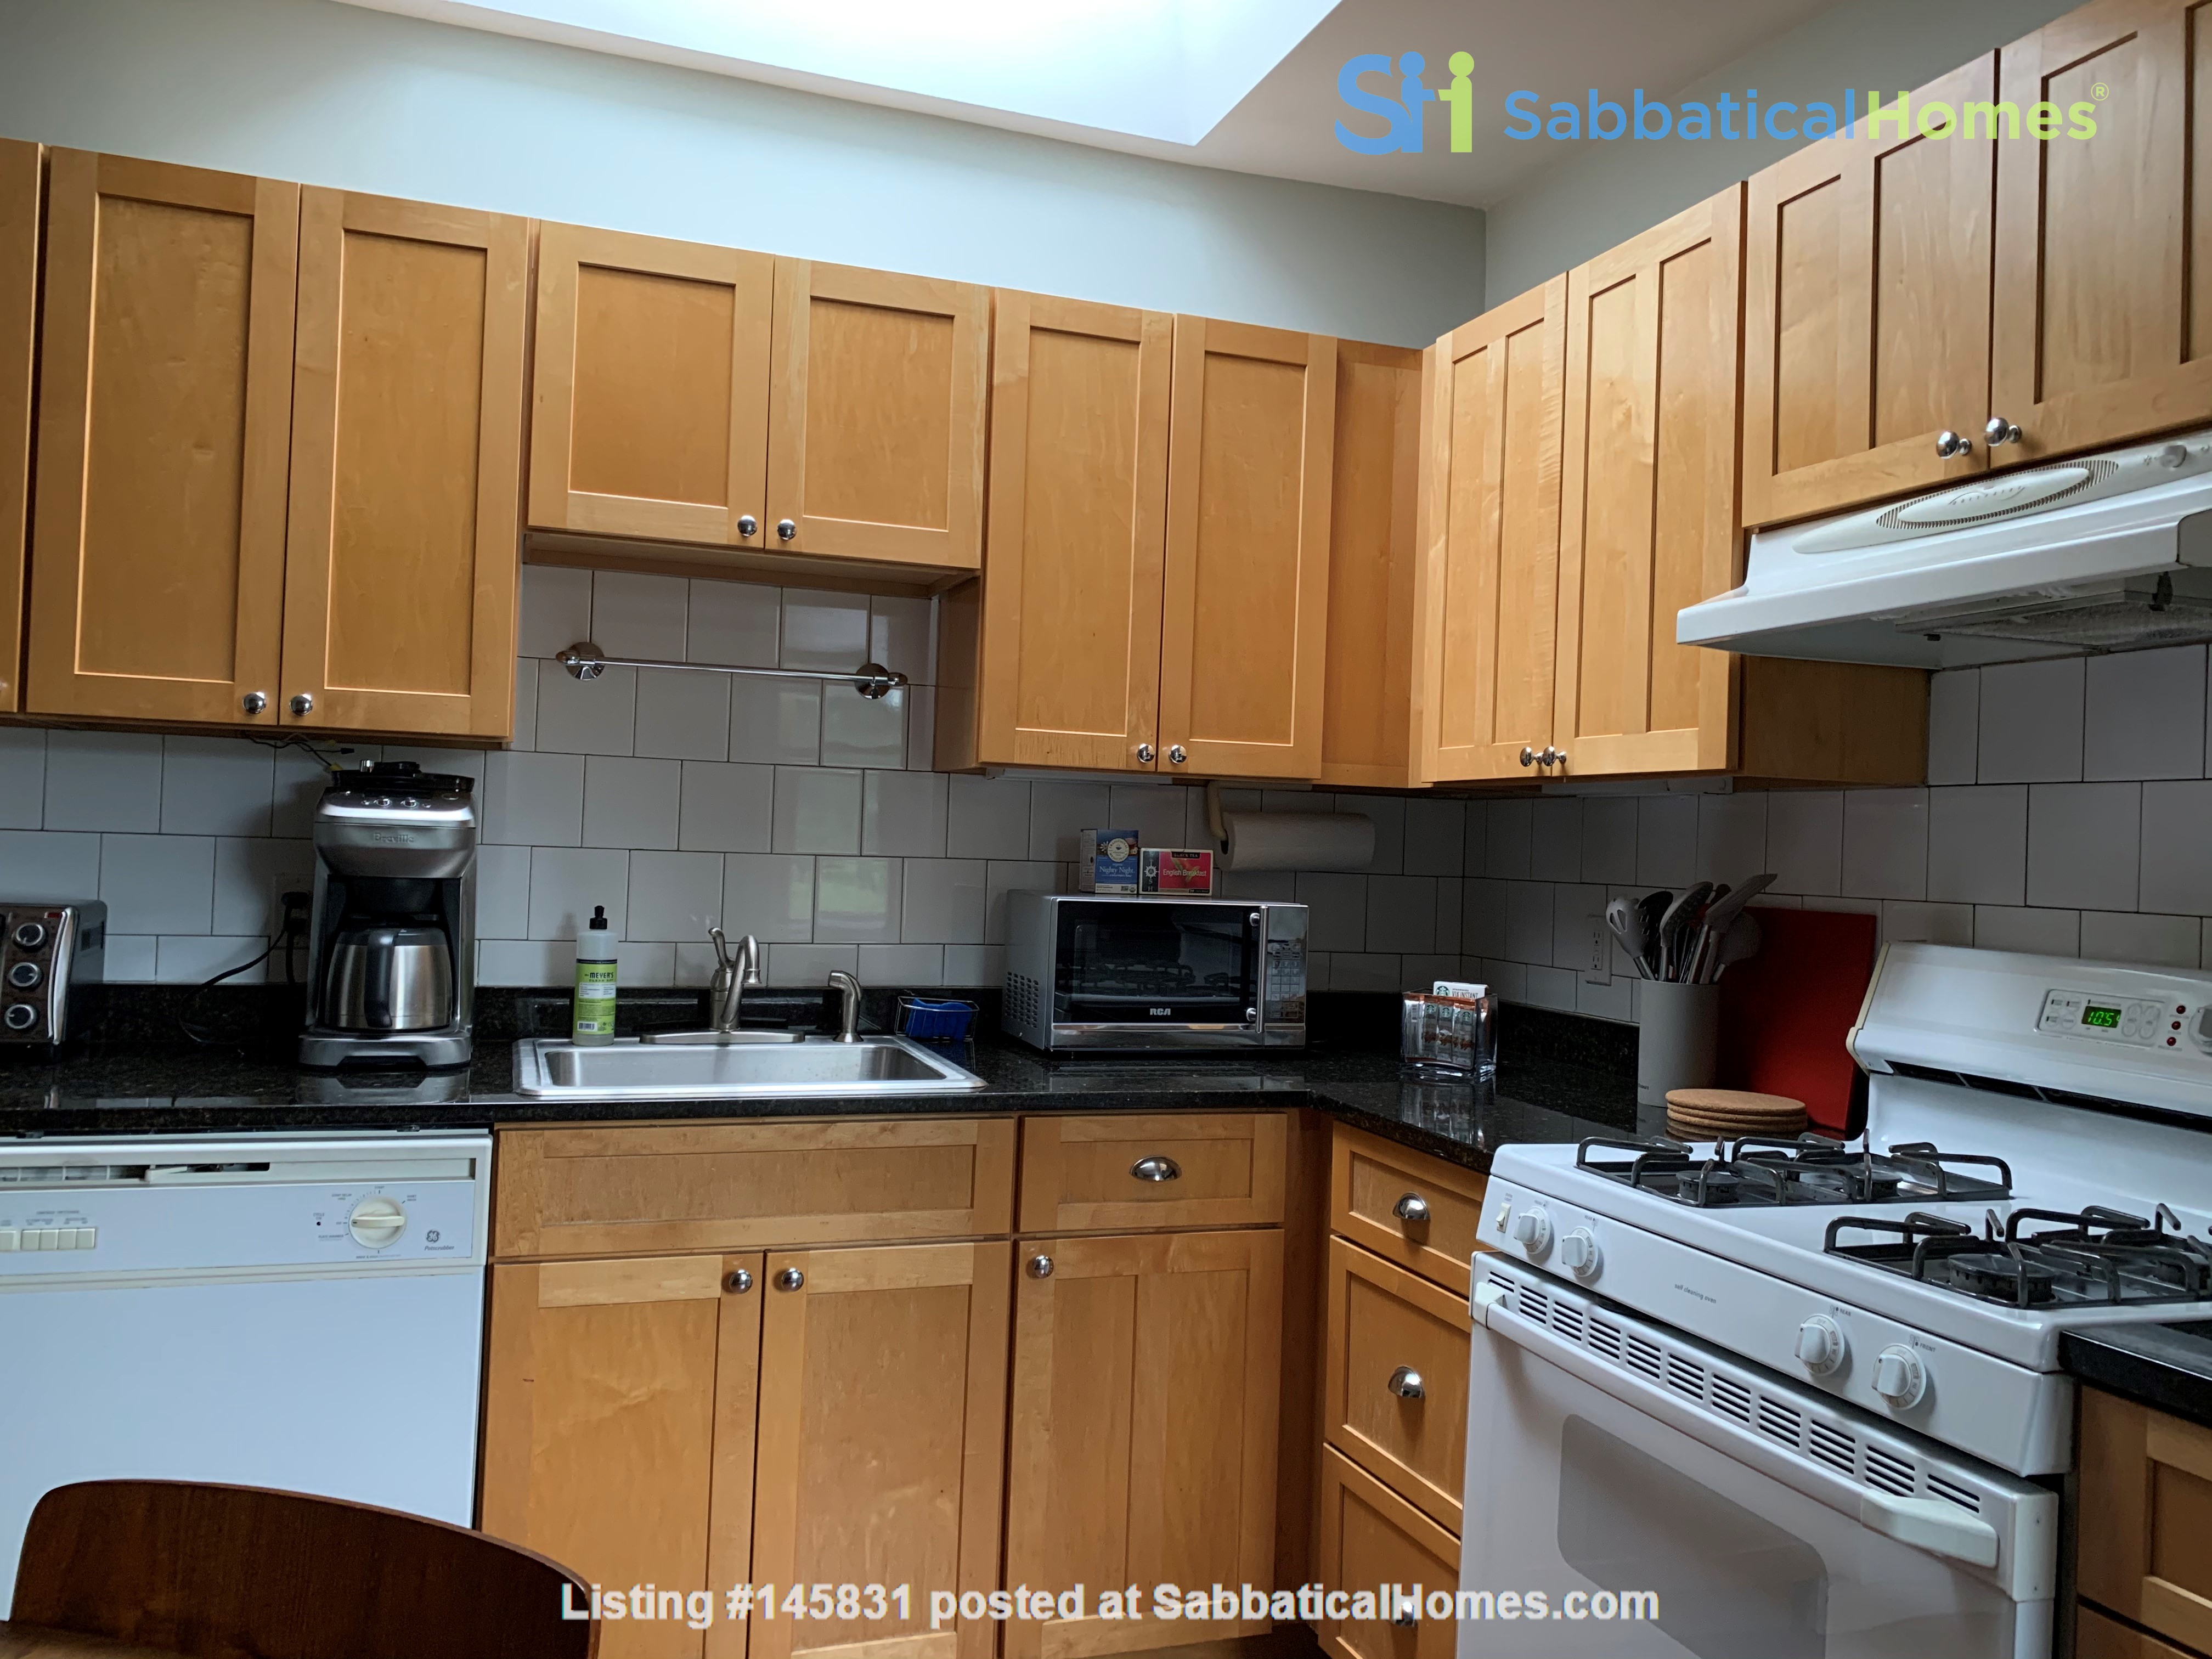 Harvard MIT HKS HBS! Fully furnished all utilities! Pets OK! No fee! Home Rental in Cambridge 1